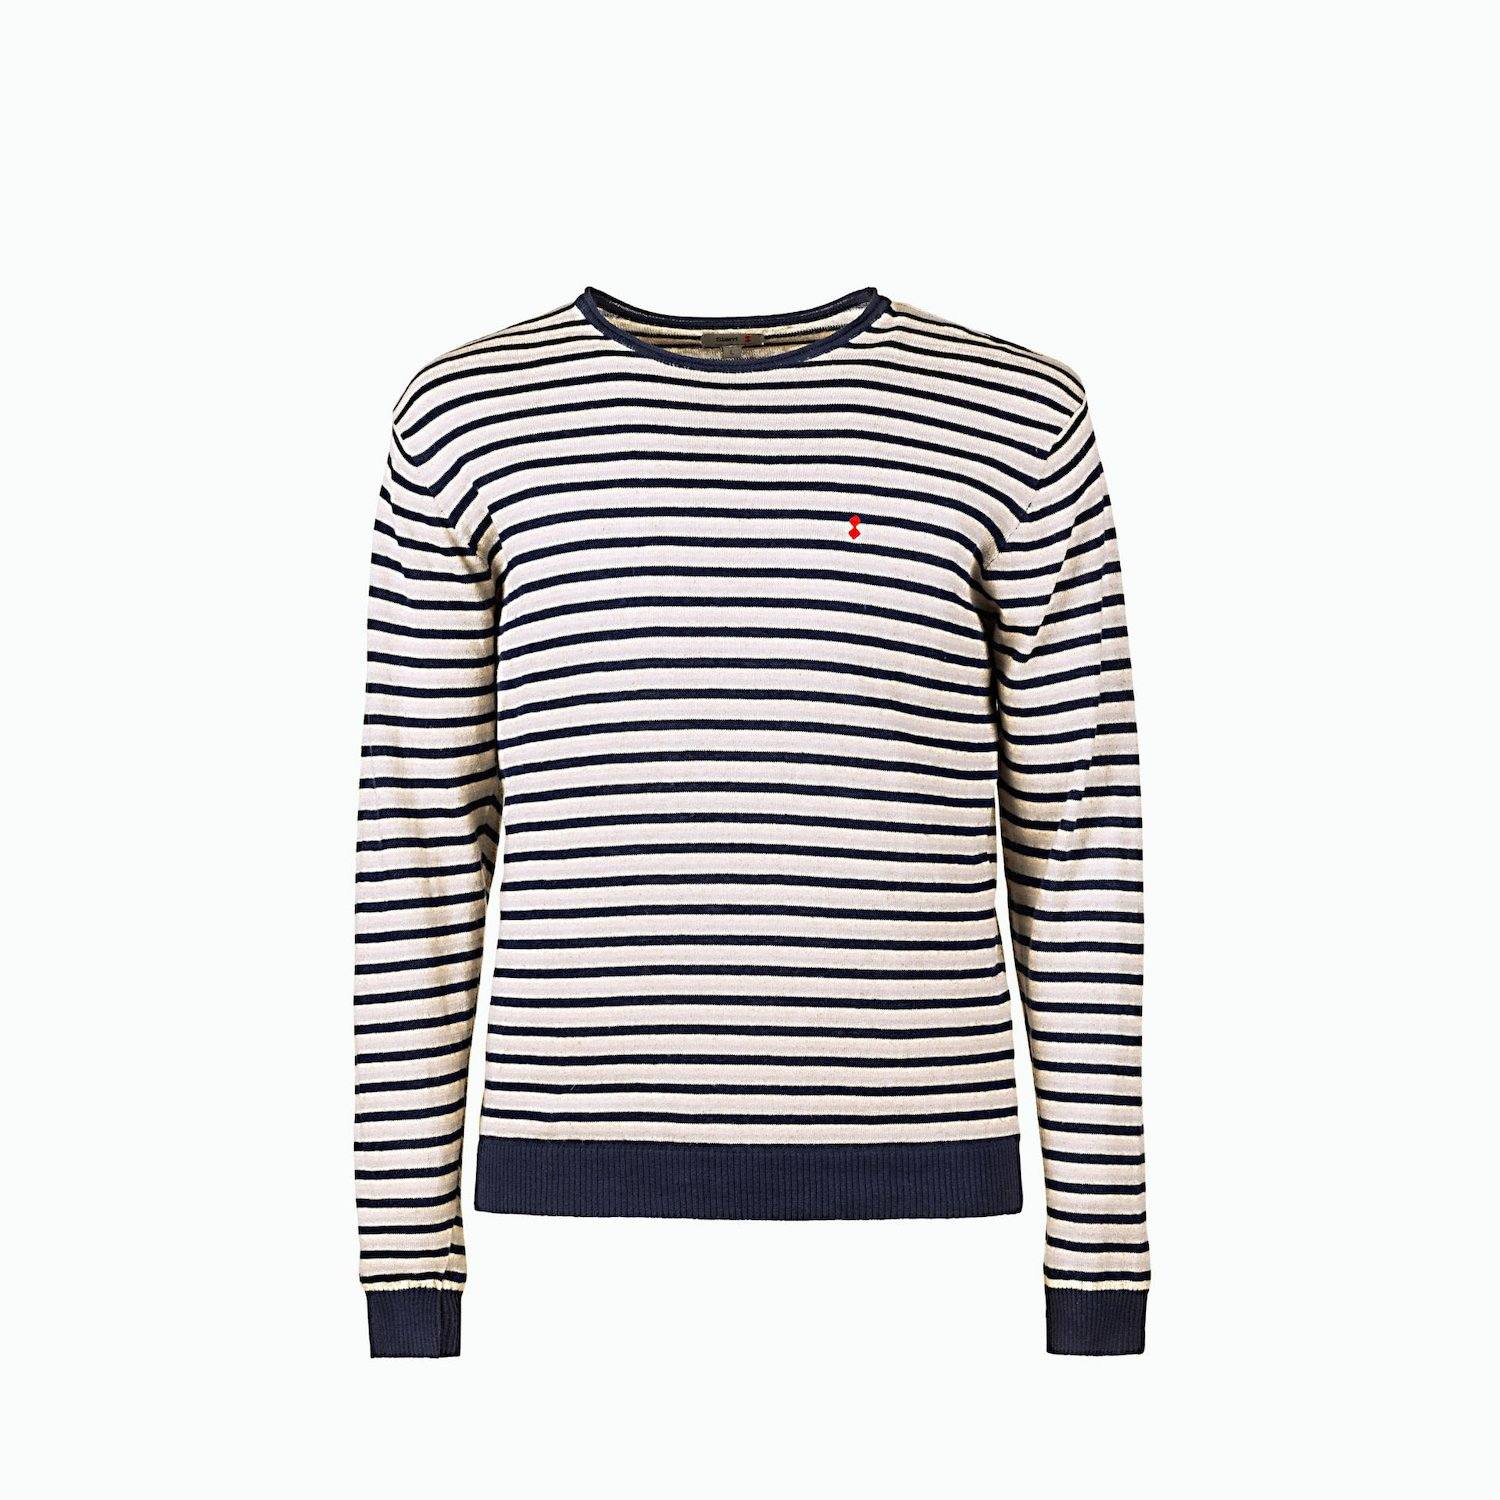 C204 Jumper - Multi Stripe Blue